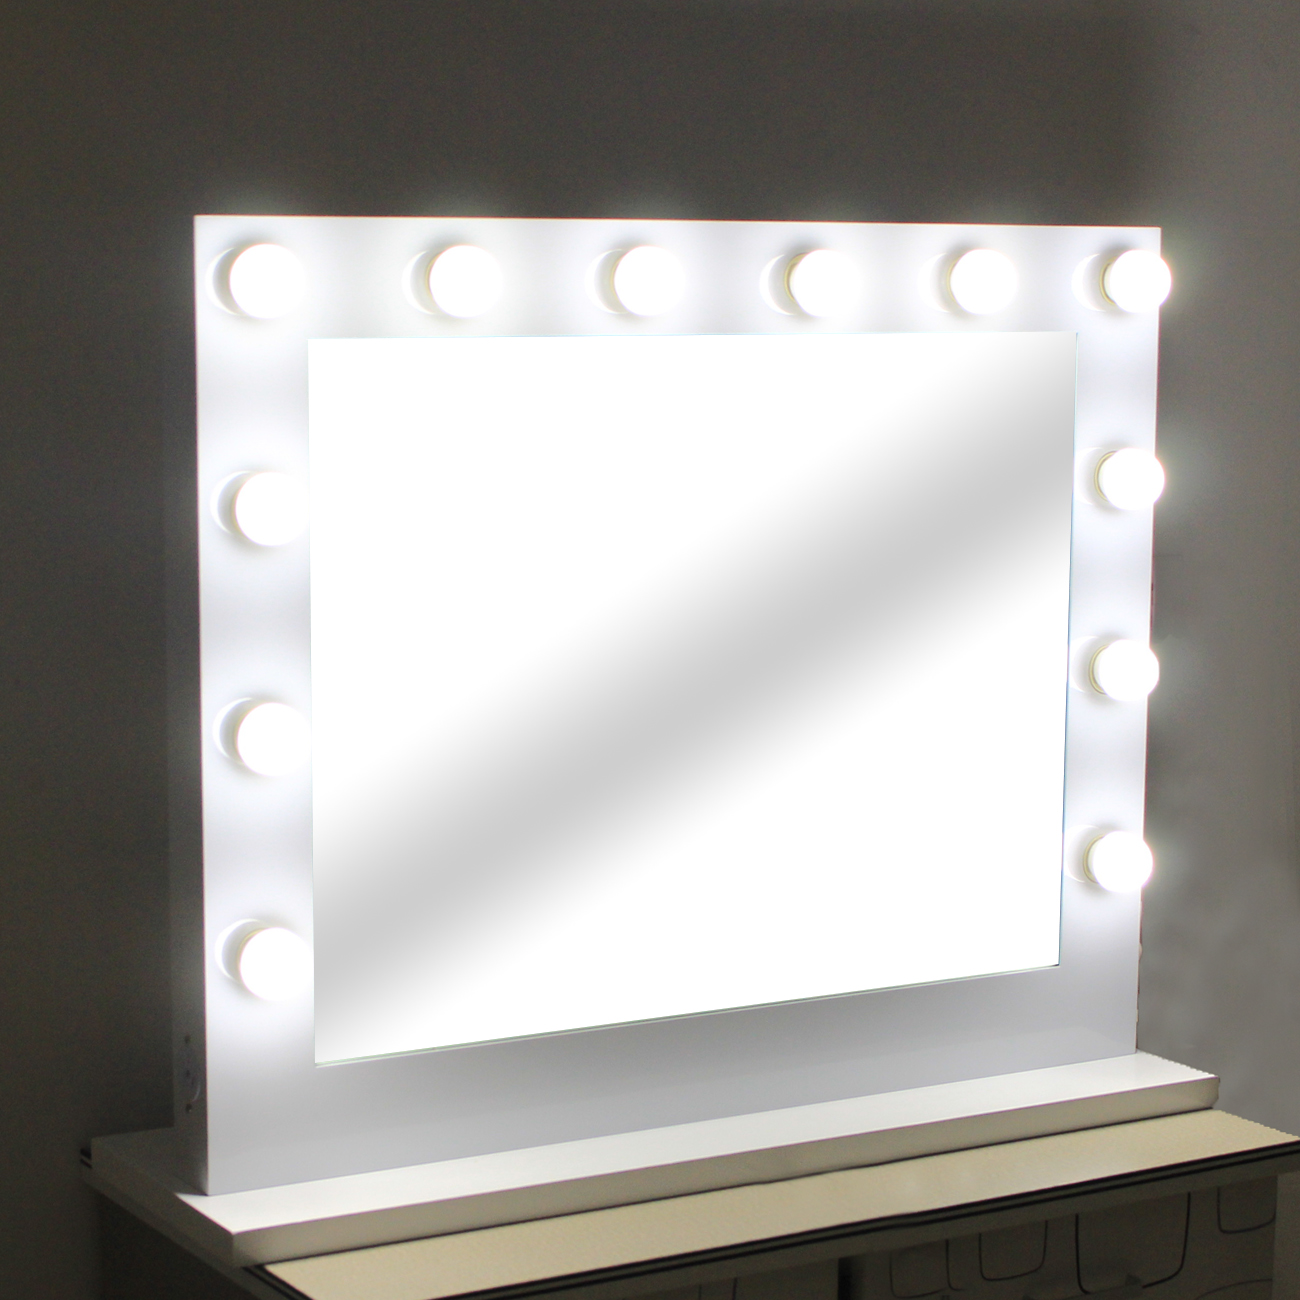 Hollywood Makeup Mirror. Large Hollywood Makeup Tabletop Mirror Vanity Mirror with Light